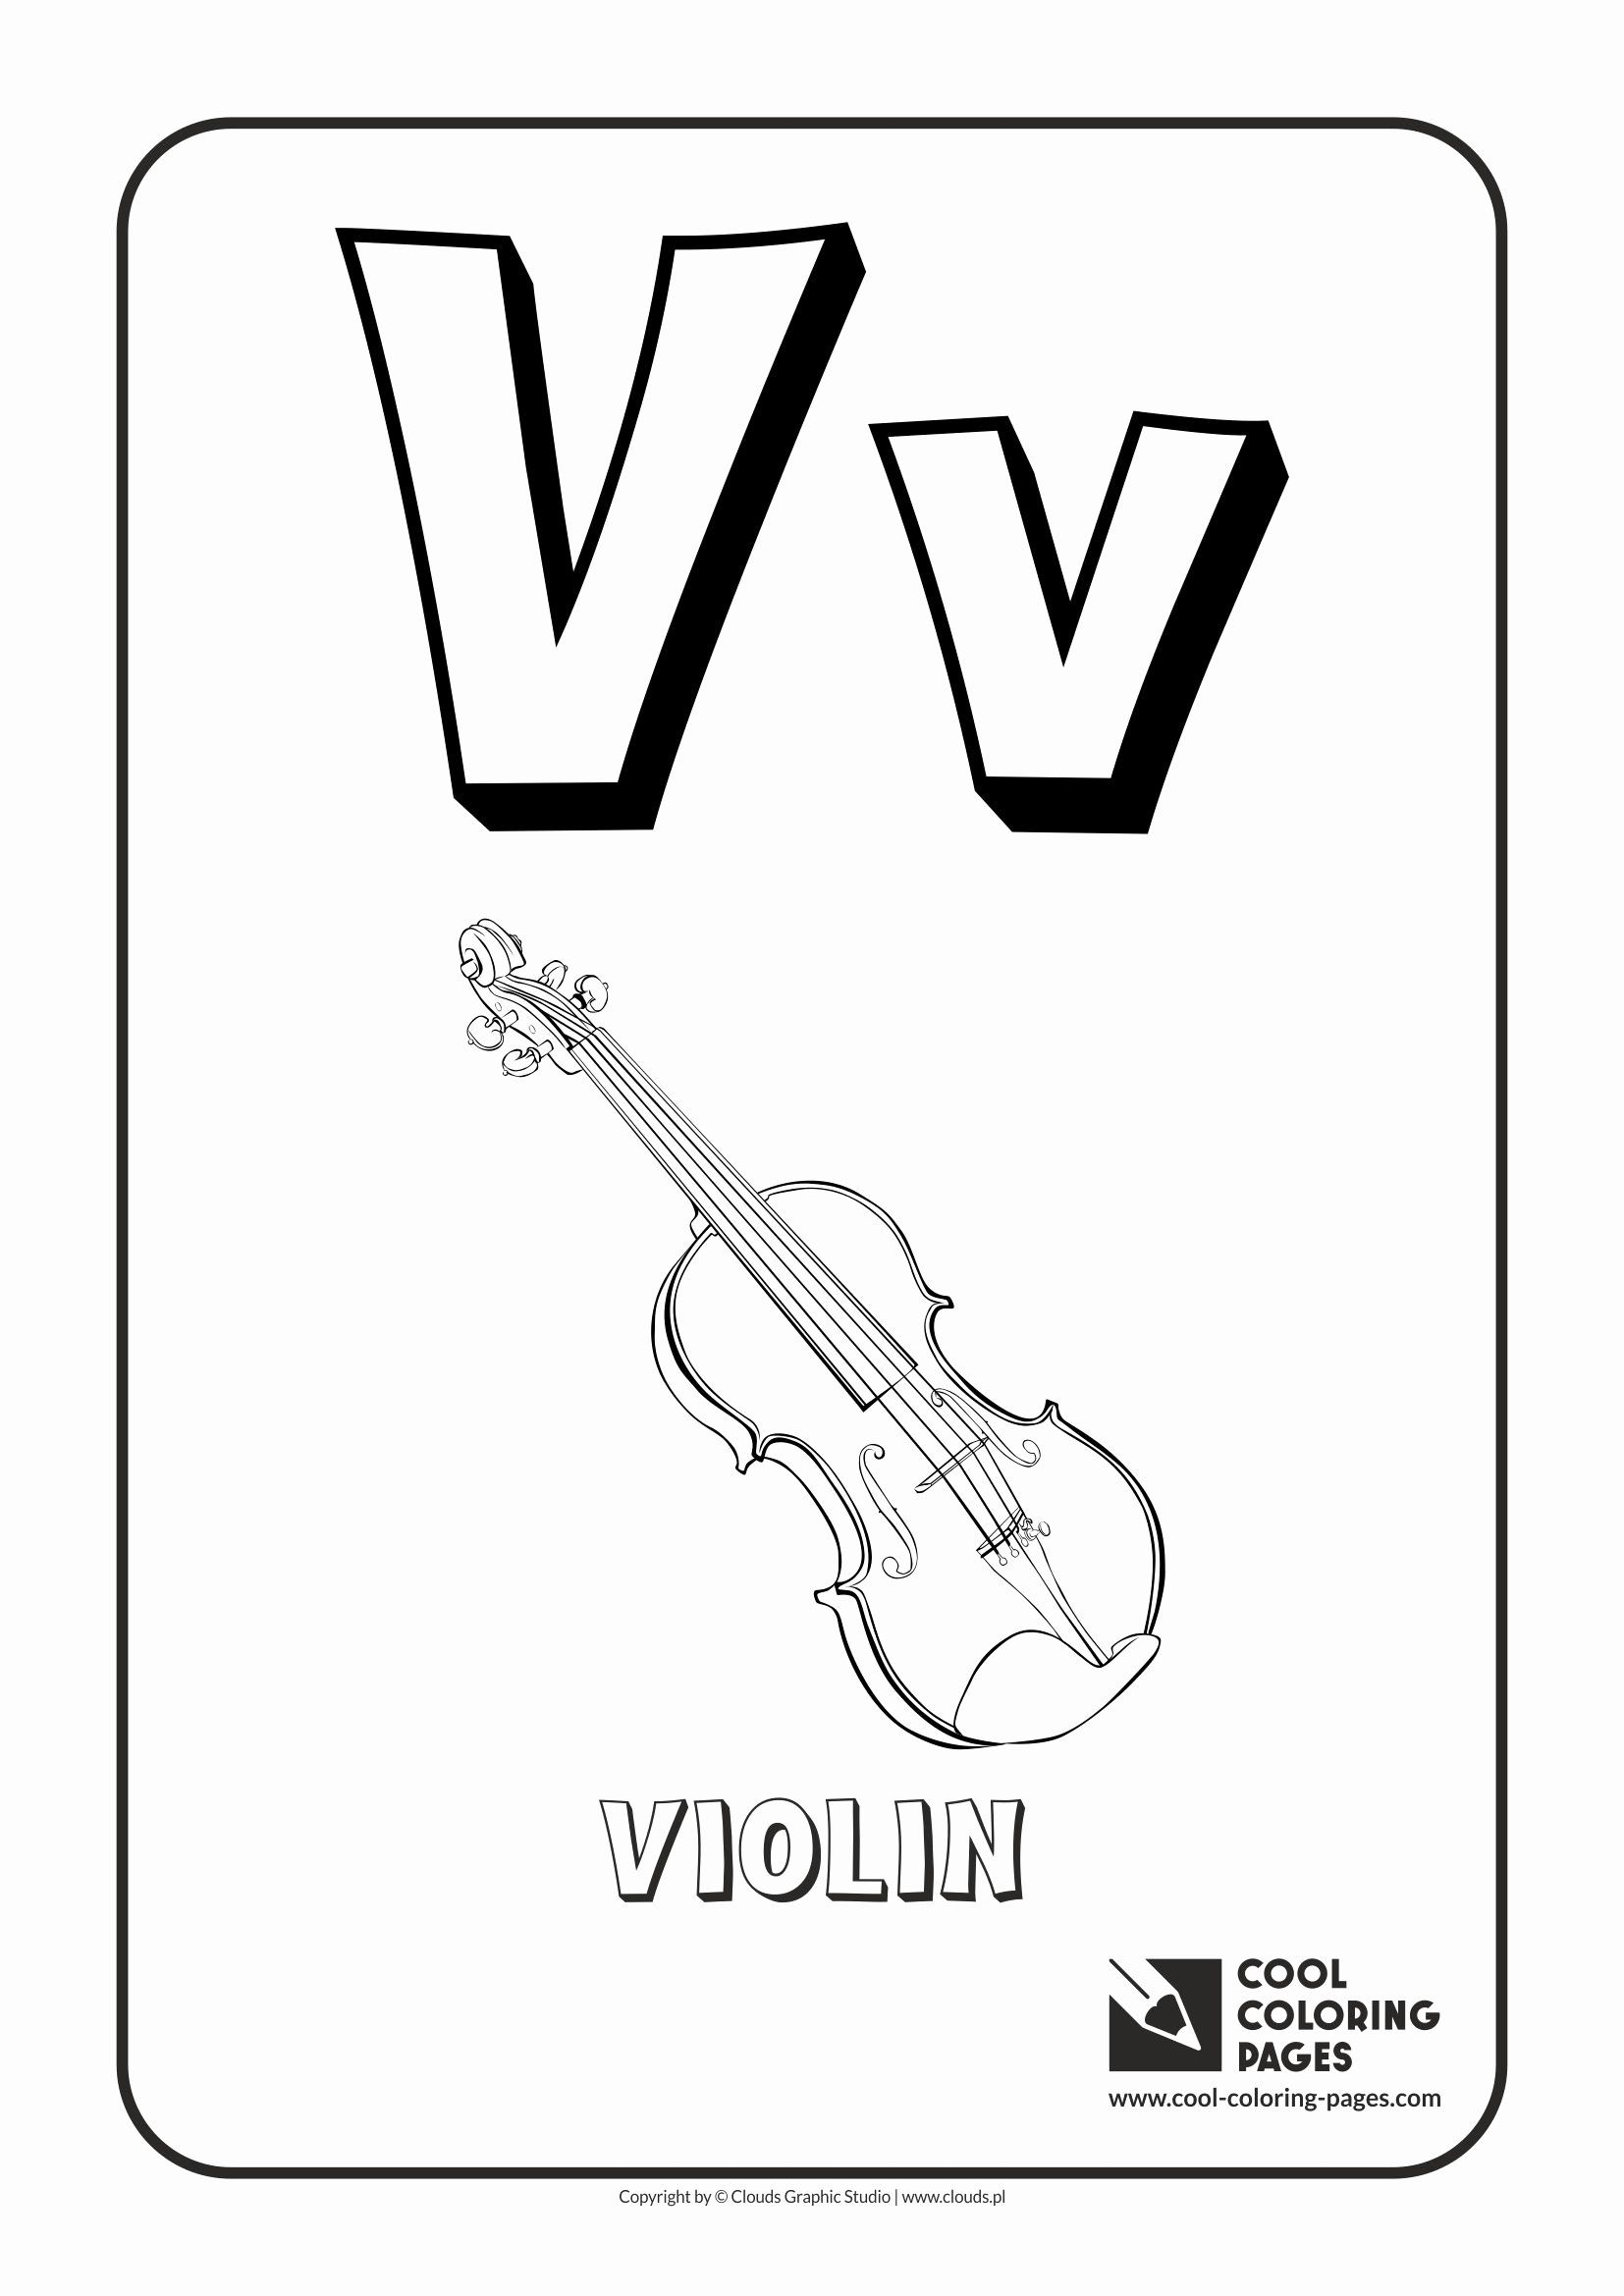 Letter V Coloring Pages Awesome Cool Coloring Pages Alphabet Coloring Pages Cool In 2020 Coloring Pages Coloring Pages To Print Preschool Coloring Pages